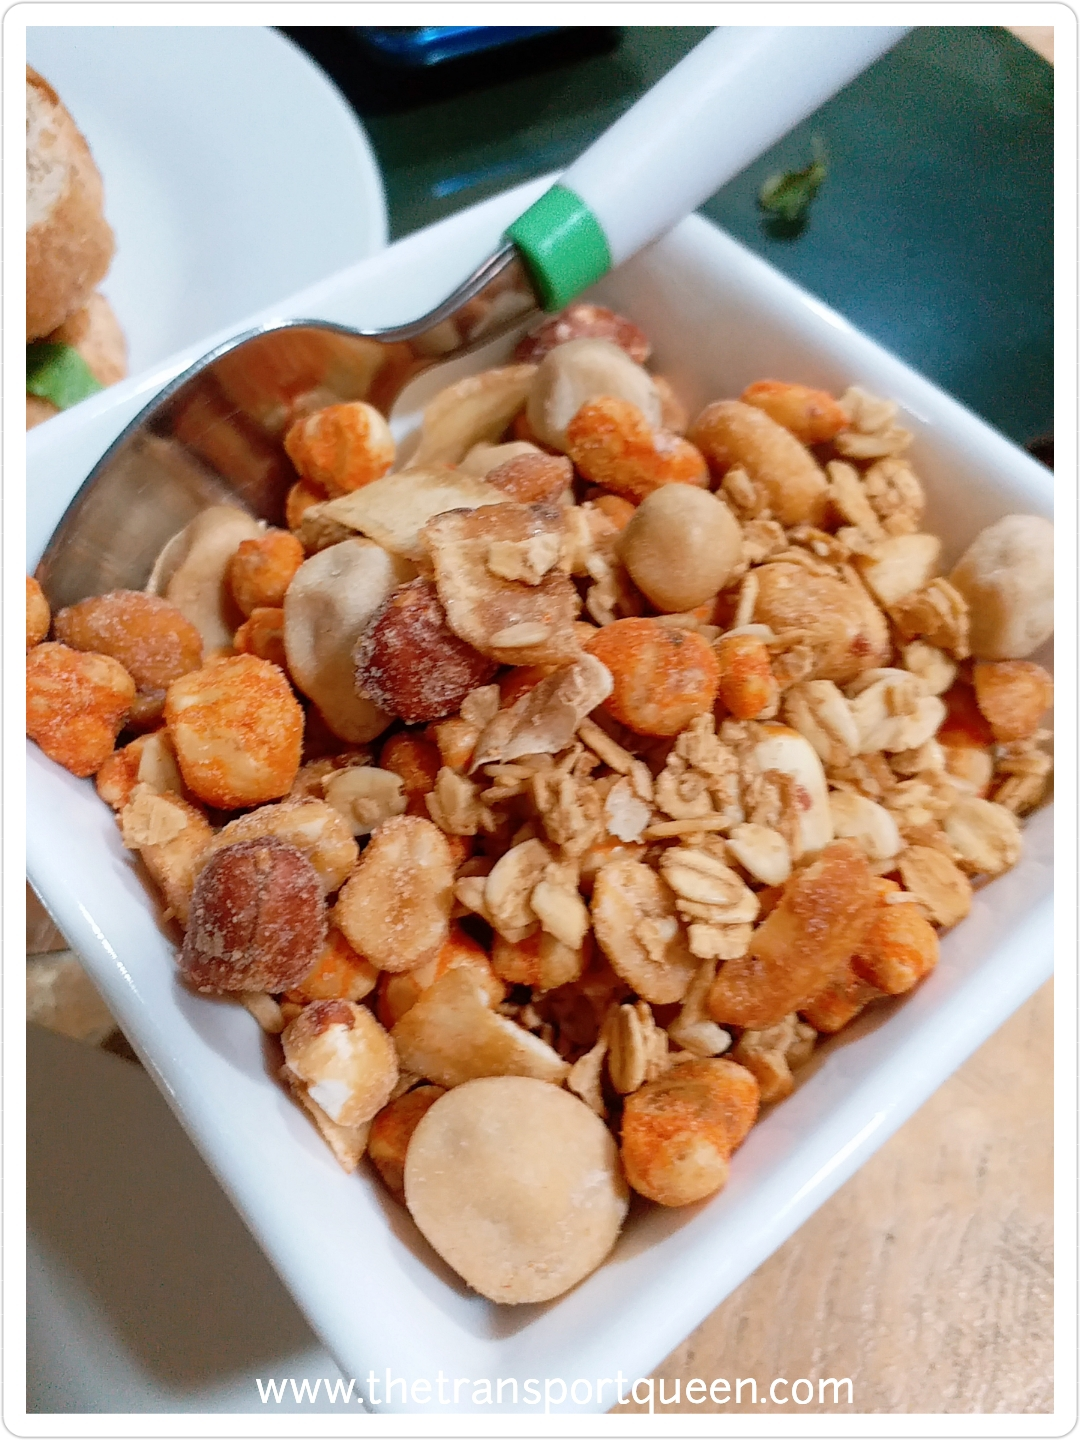 mixed nuts and oats